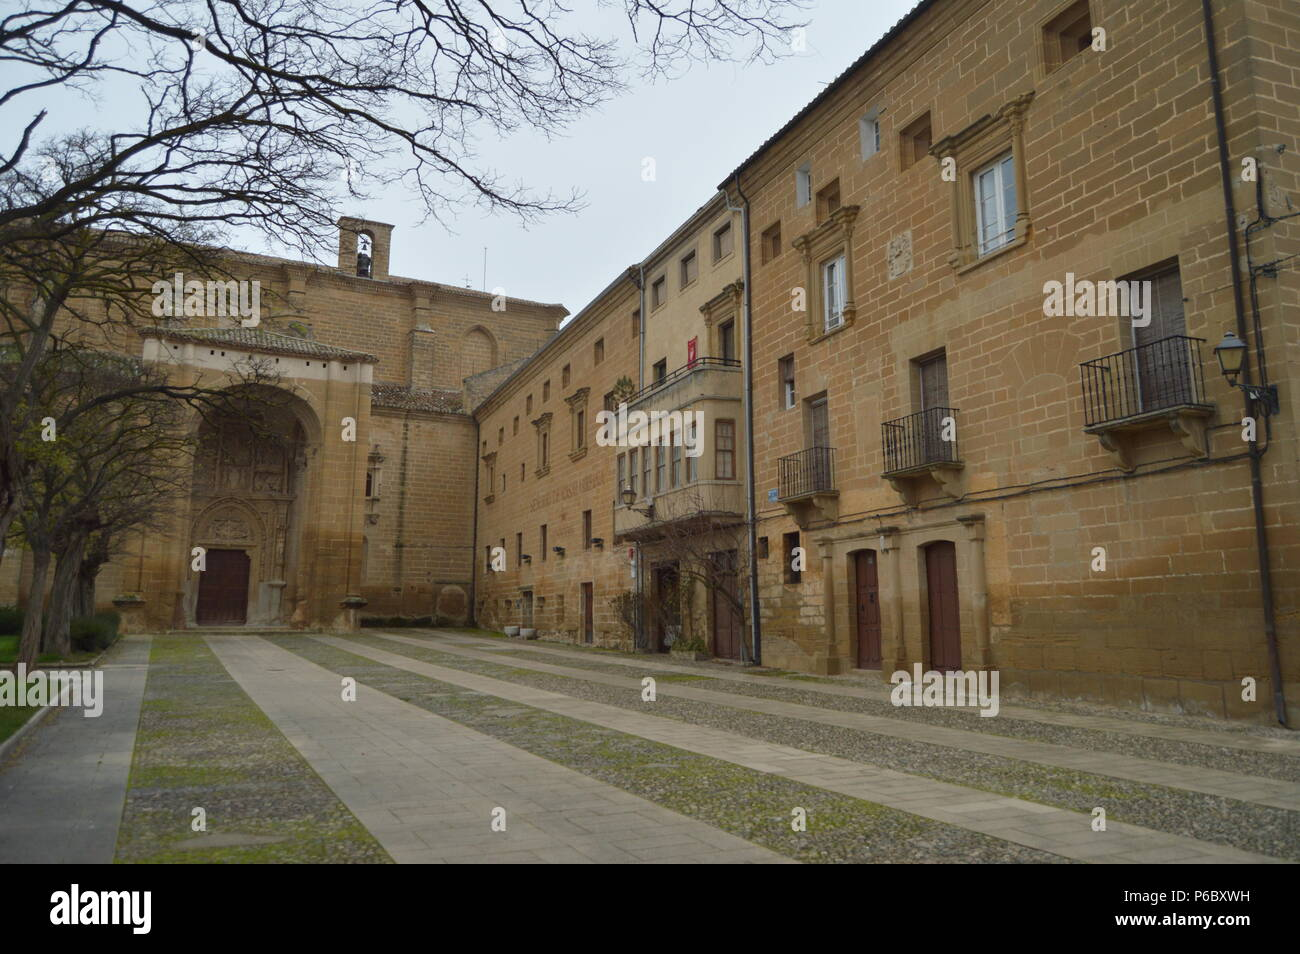 Main Square Of Casalarreina With Its Picturesque Buildings And The Church Of San Martin. Architecture, Art, History, Travel. December 27, 2015. Casala - Stock Image